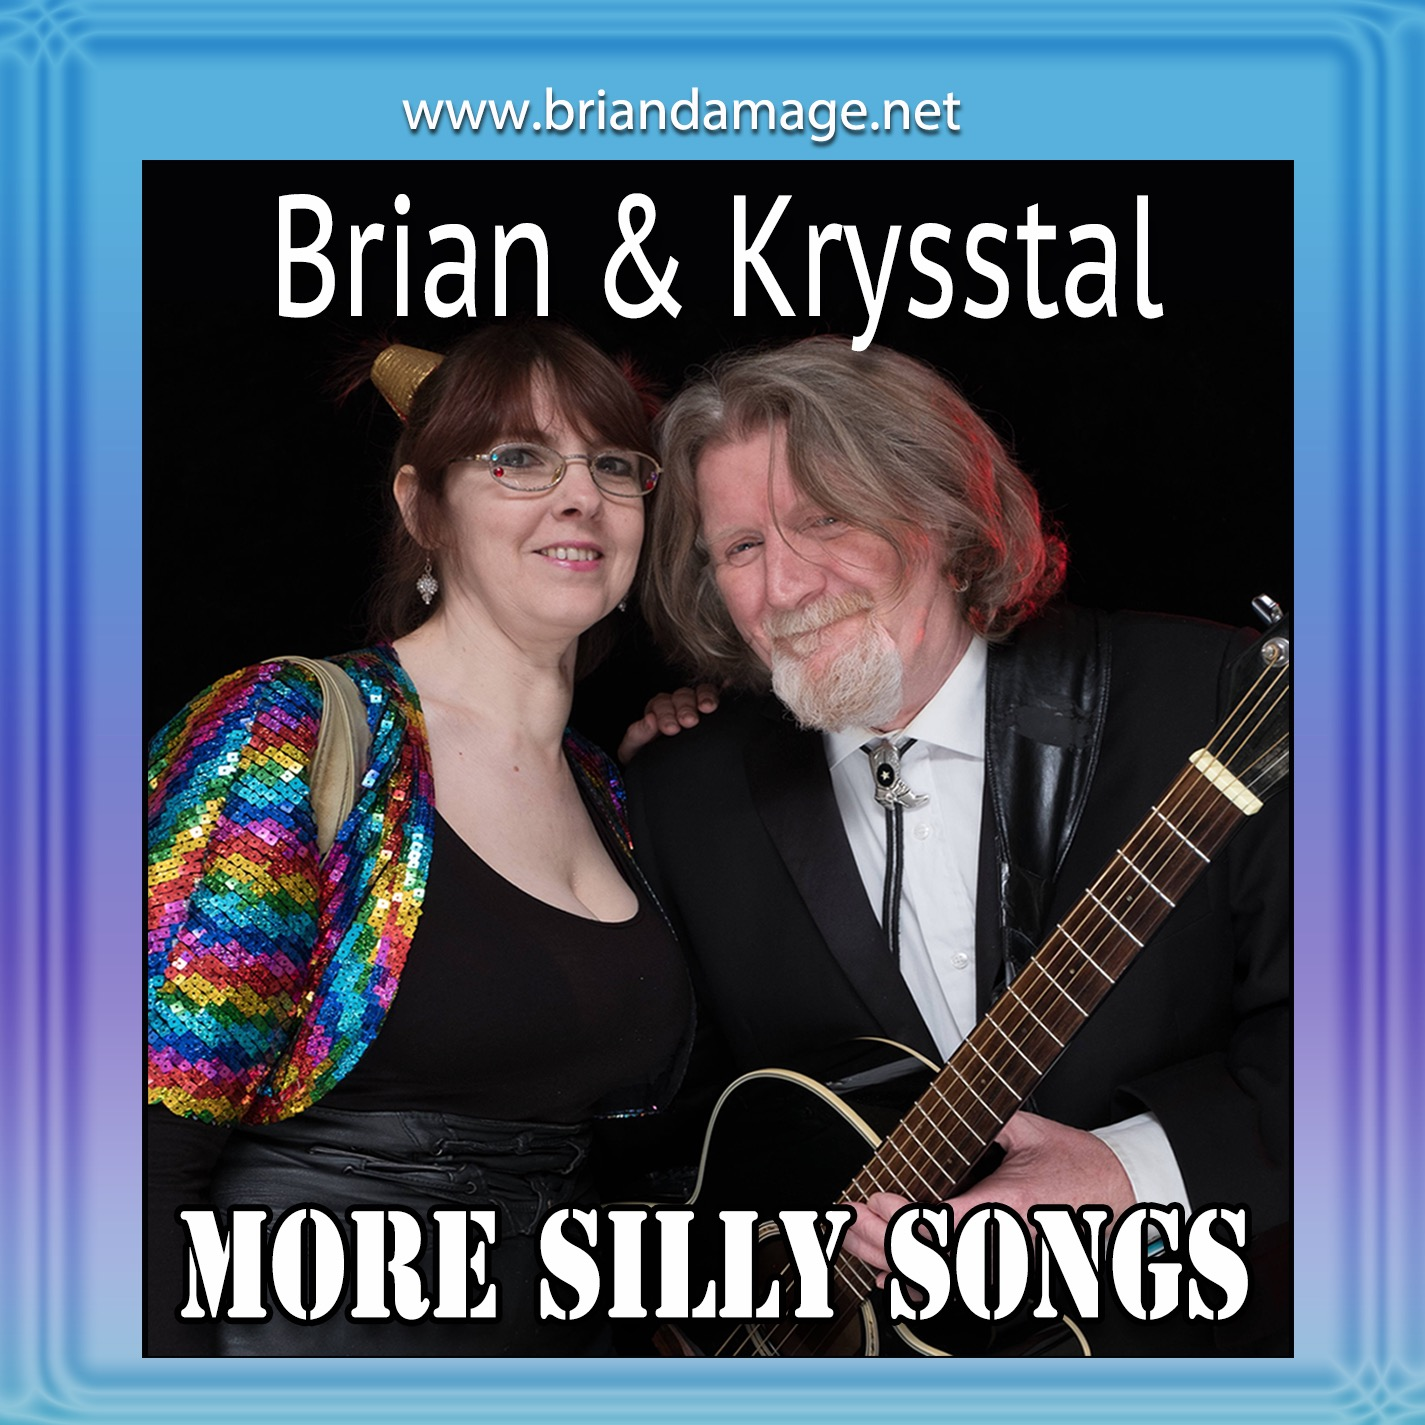 Brian & Krysstal'sNew CD More Silly Songs